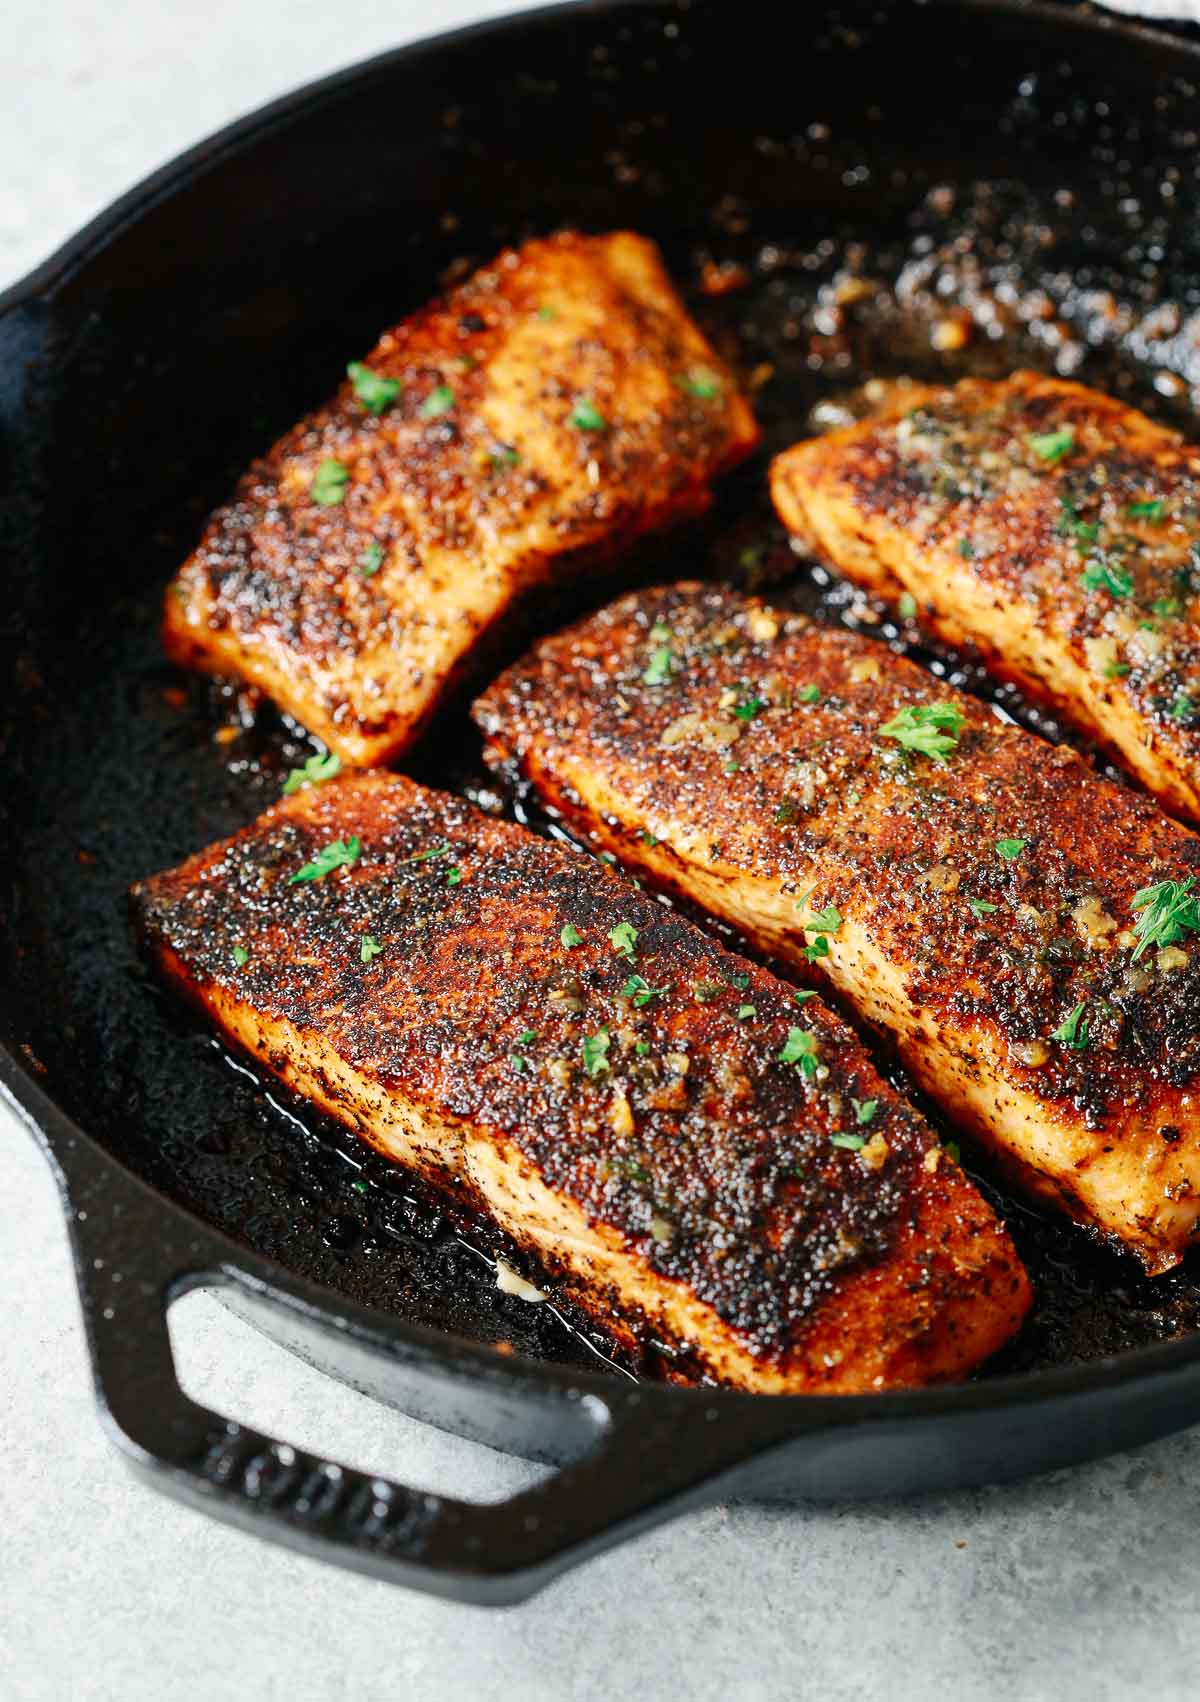 4 blackened salmon fillets in a cast iron skillet